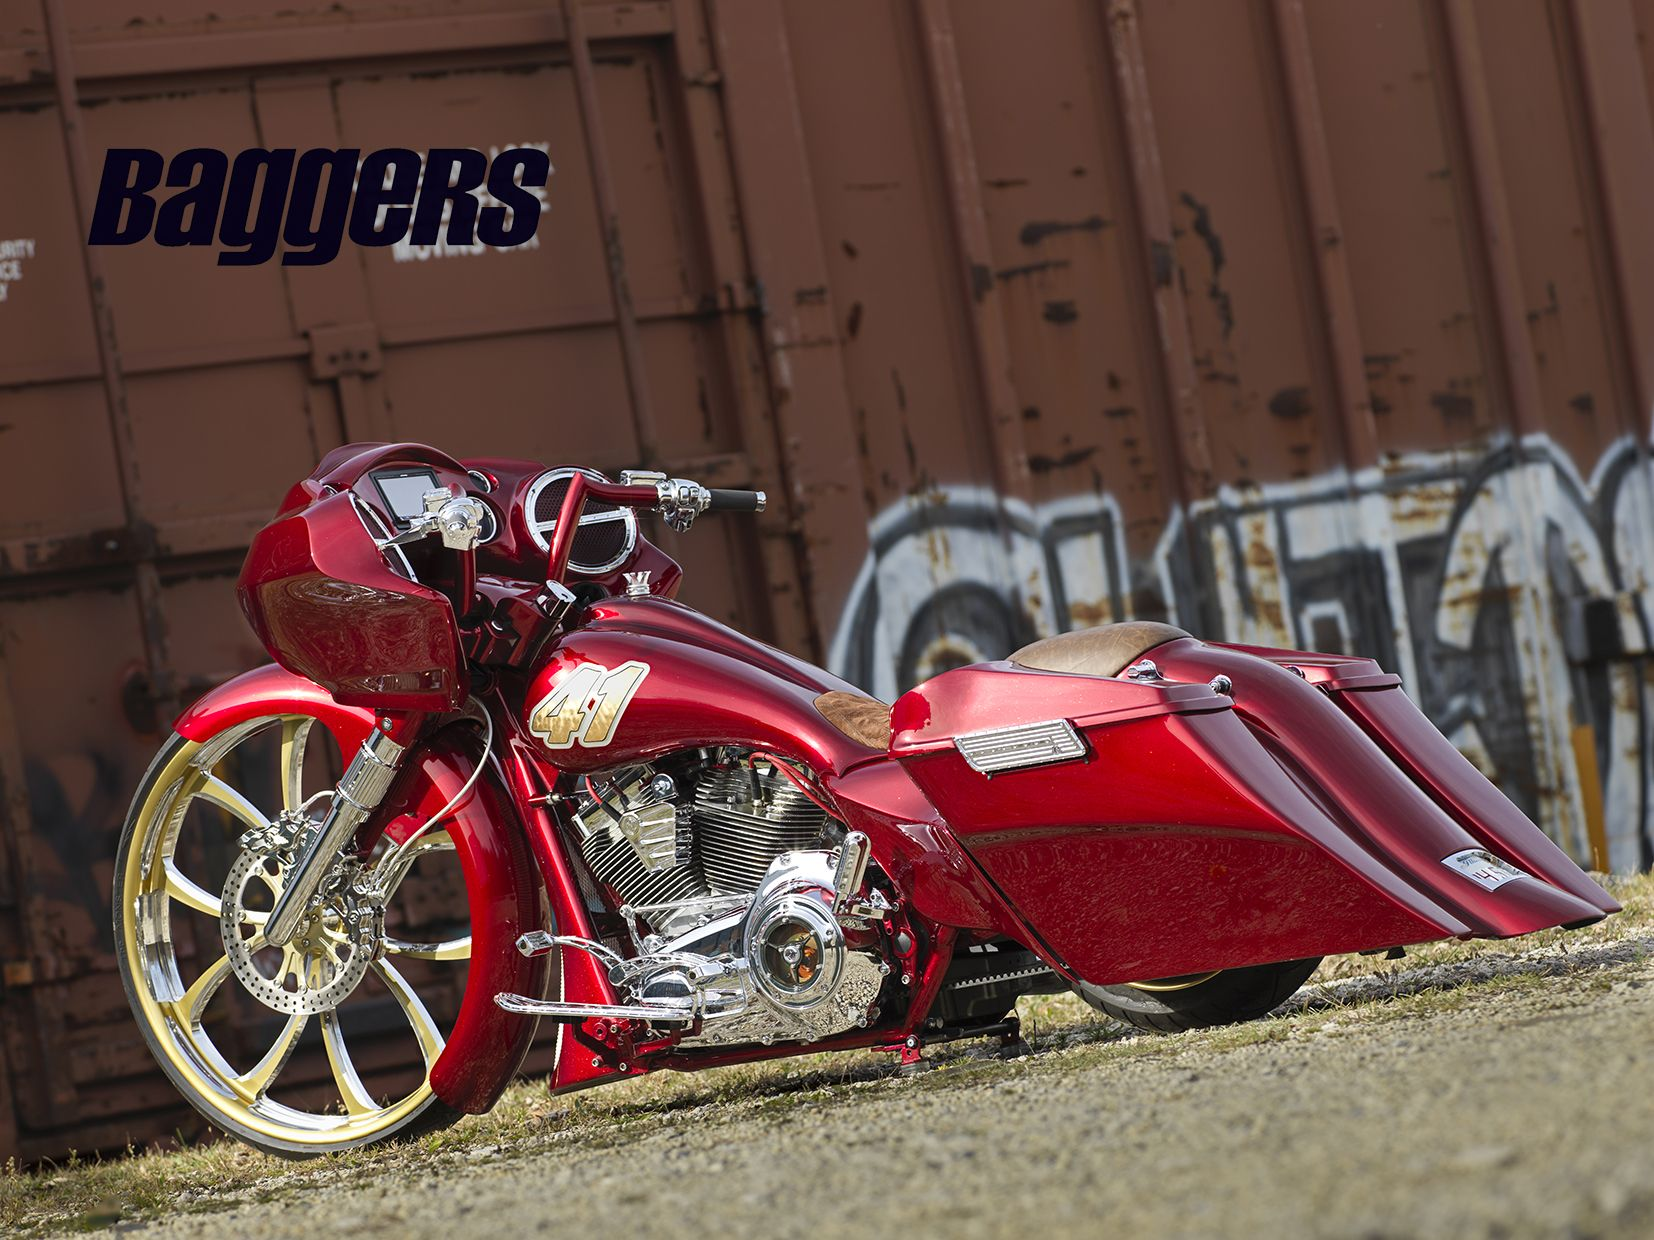 Da performance built this sick 2013 harley davidson road glide custom bagger as an invited baggers bike build off on the 2014 hot bike tour and everyone